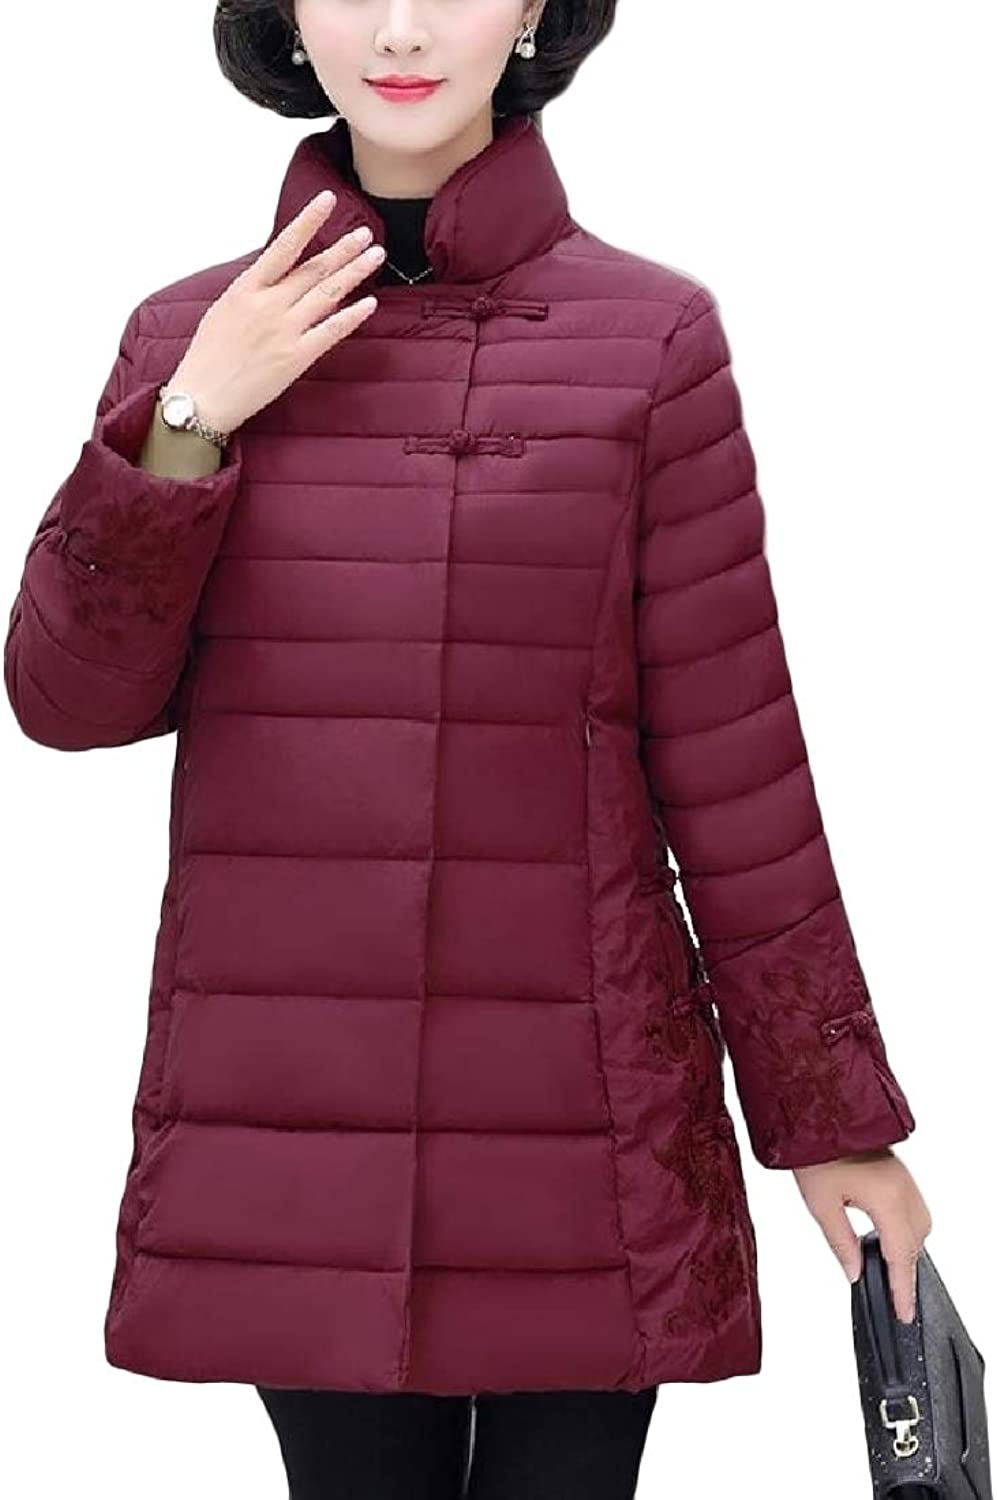 XTRENM Women Light Weight Mao Collar Embroidery Relaxed Fit Padded Coat